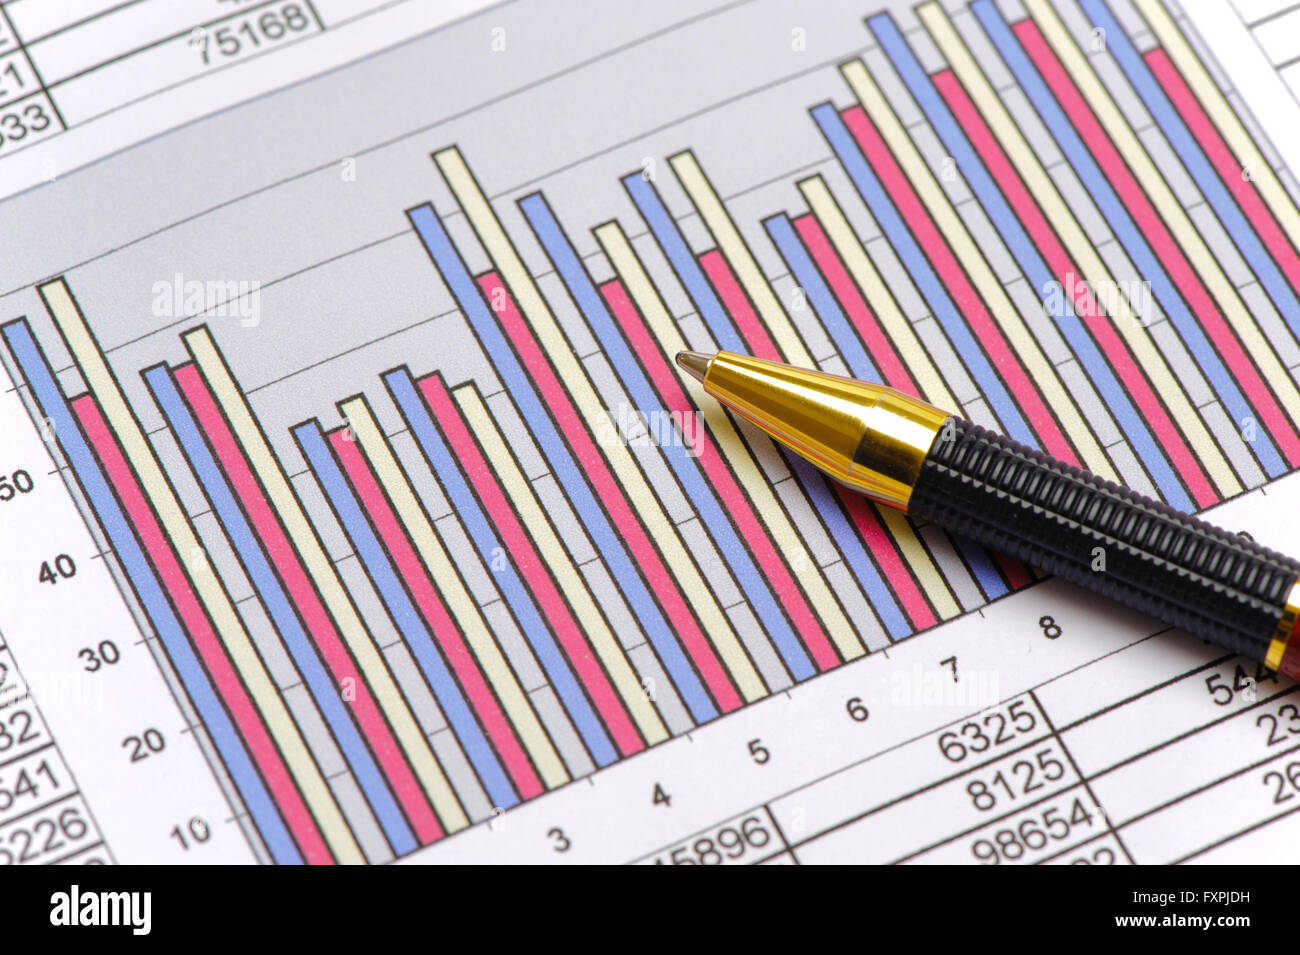 chart of stock market shows growth - Stock Image